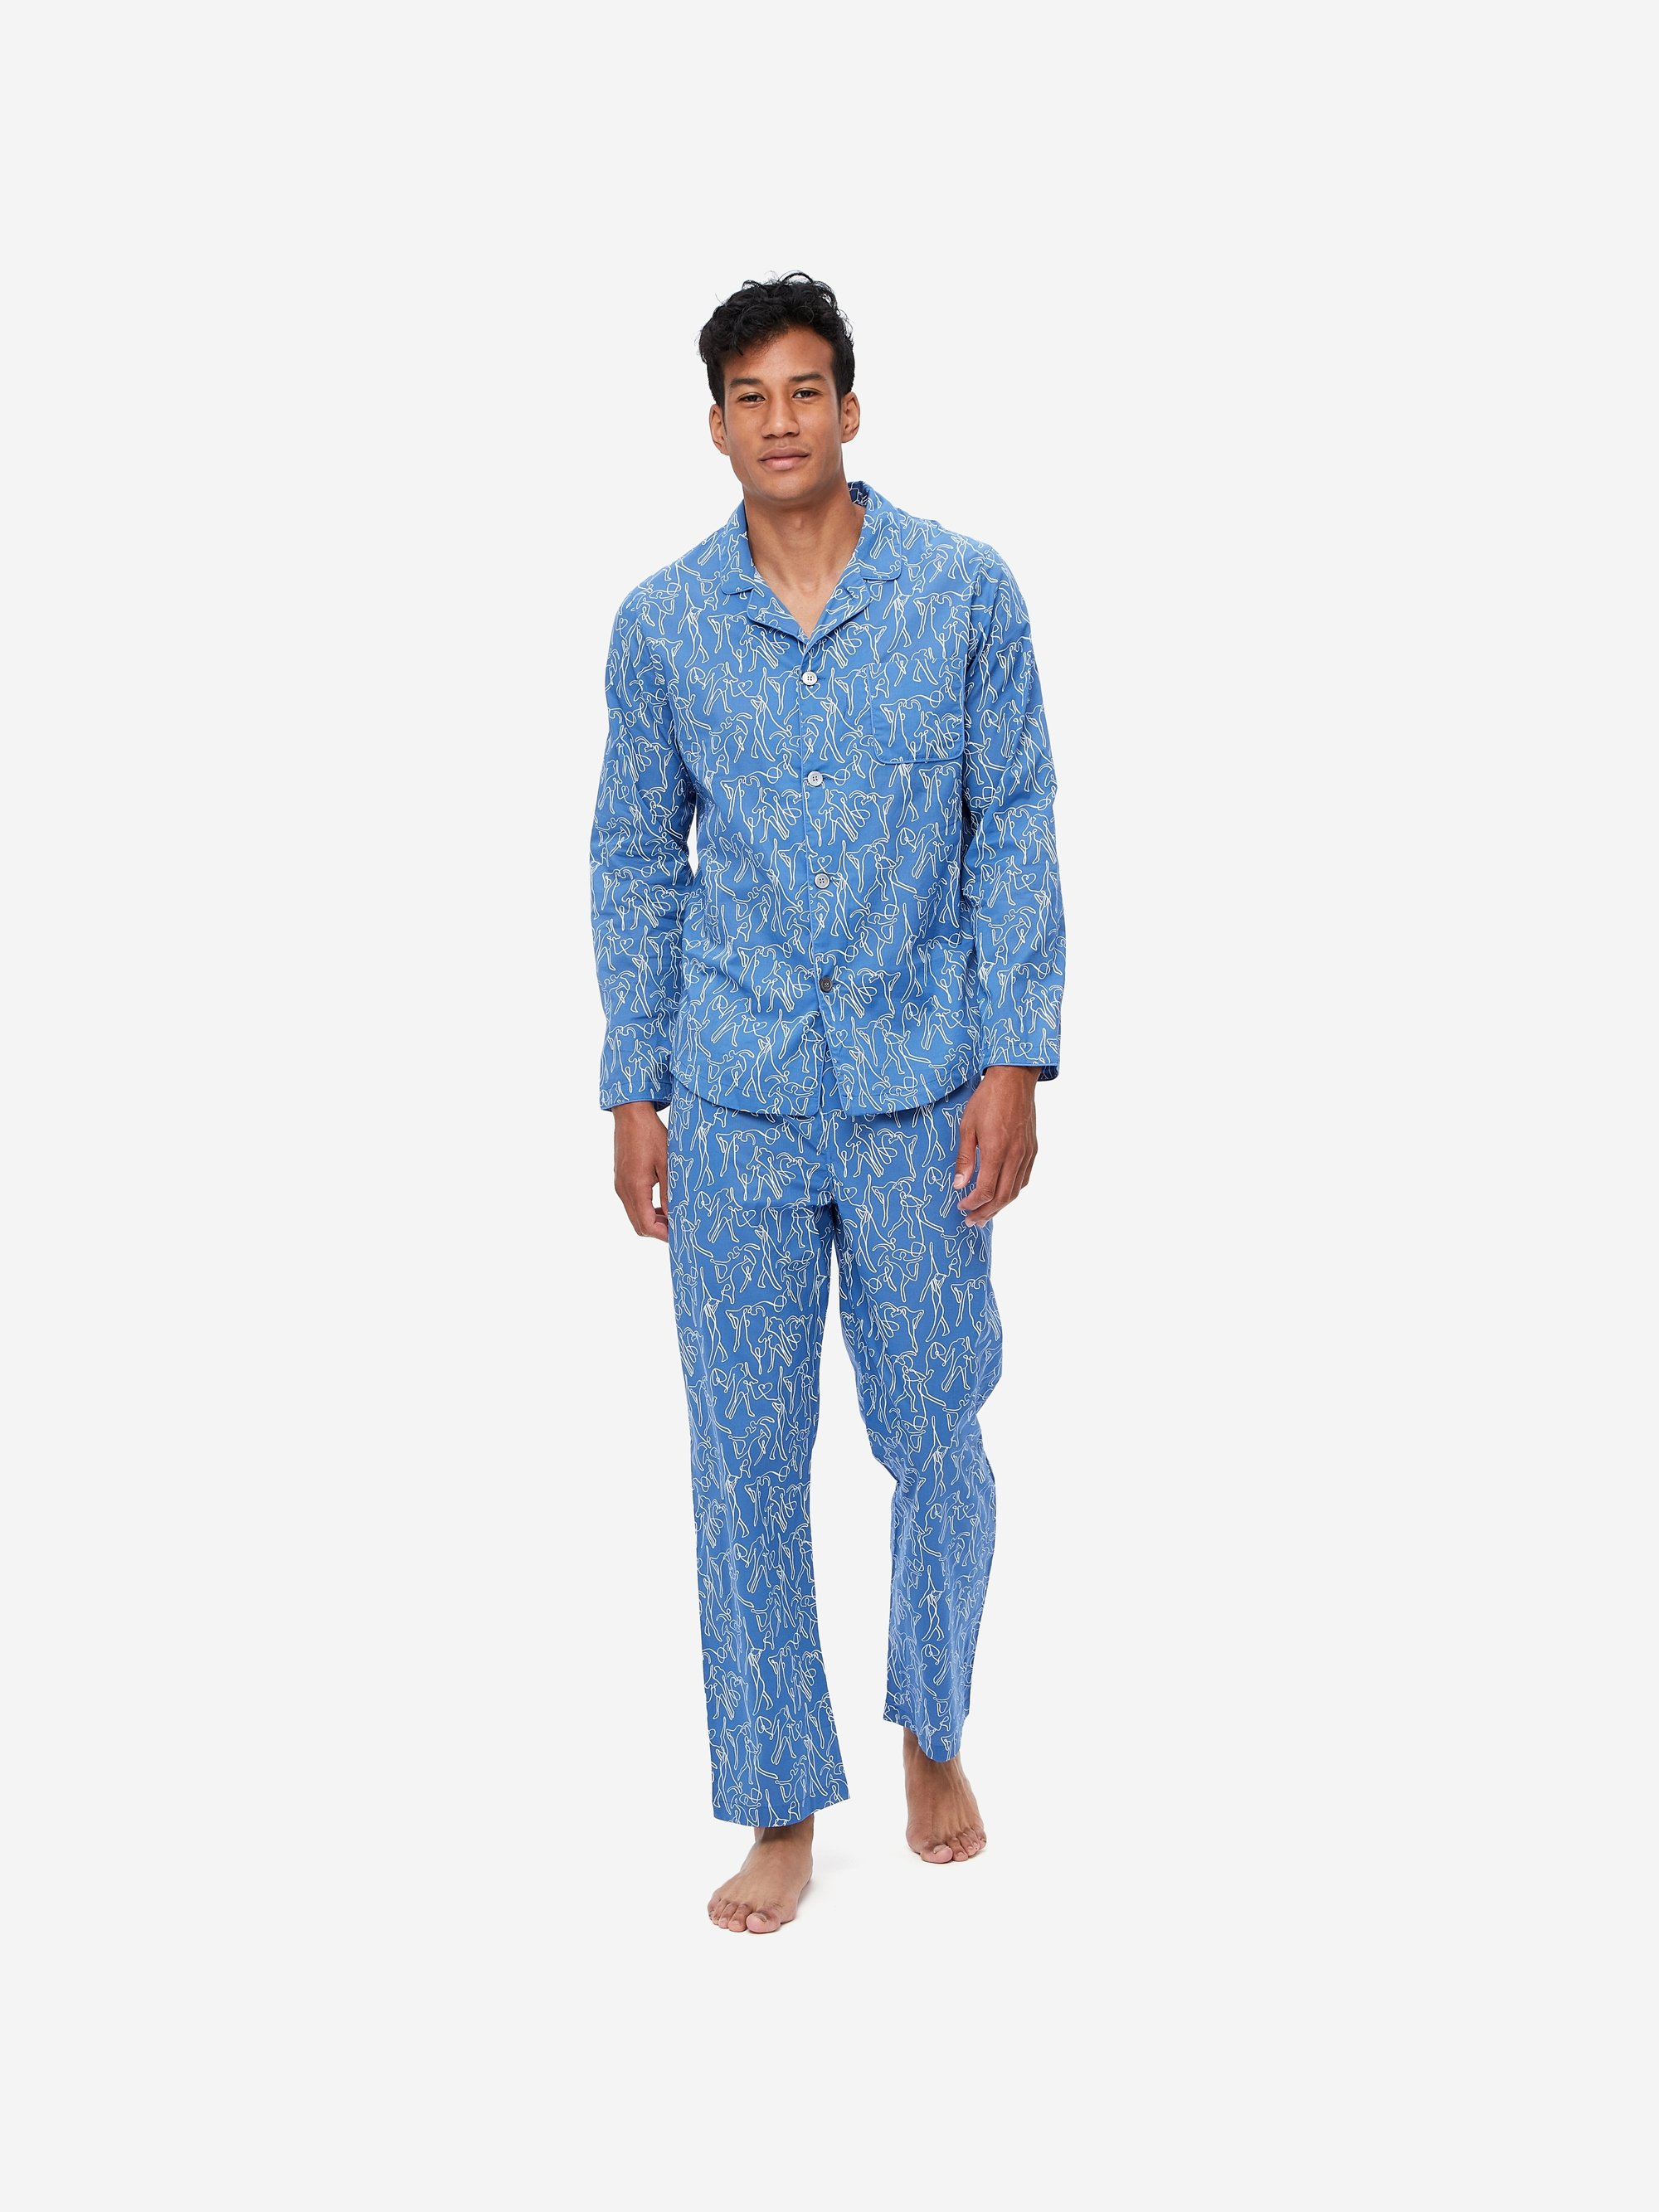 Men's Modern Fit Pyjamas Nelson 76 Cotton Batiste Blue